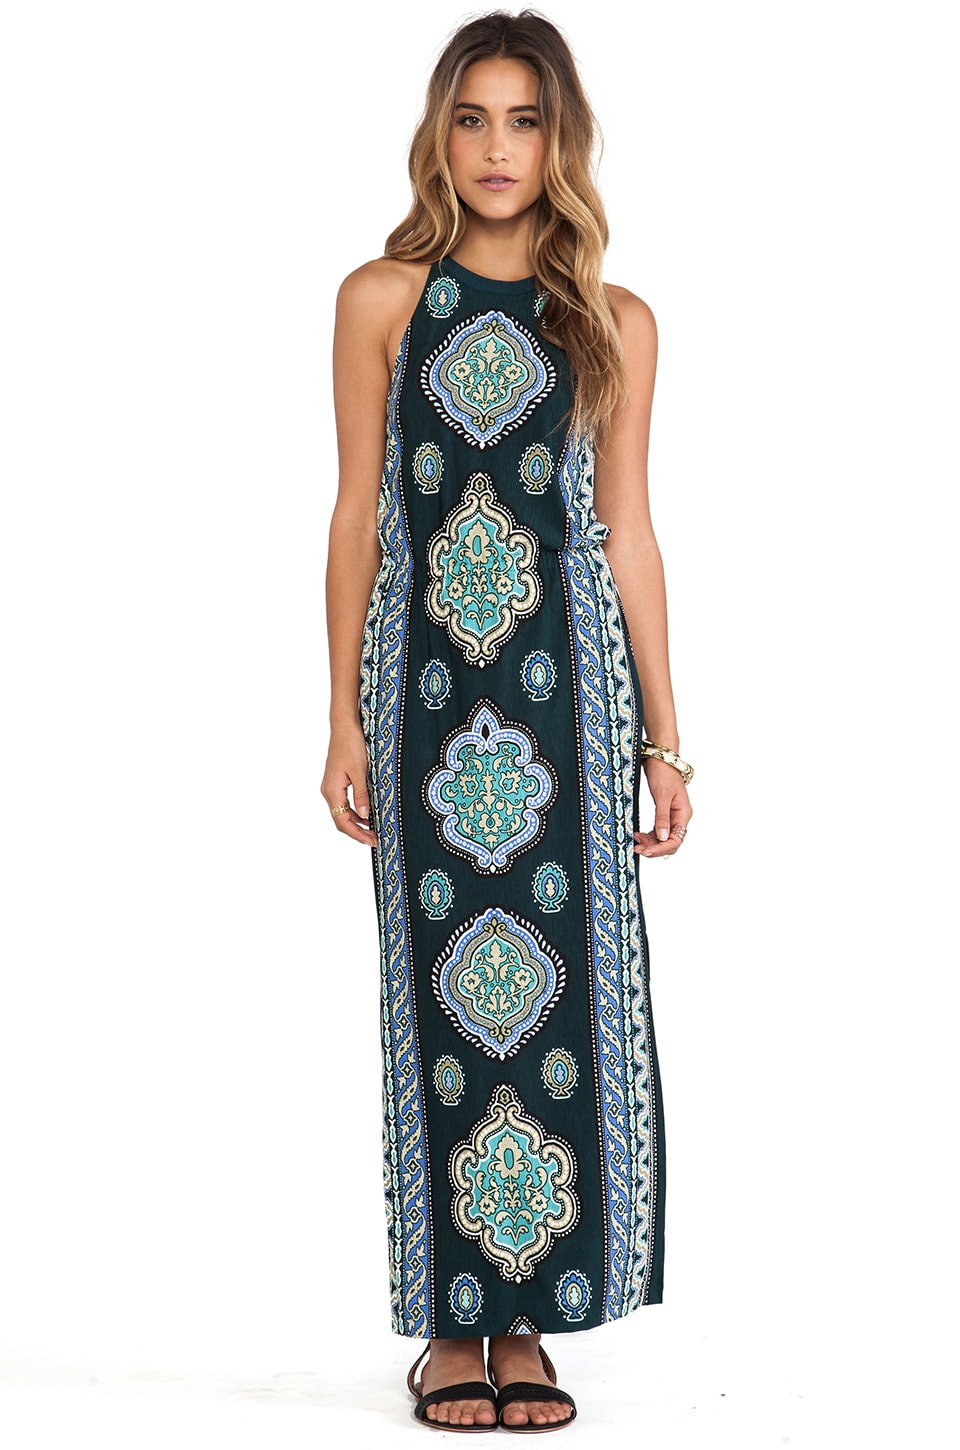 Tigerlily Mughal Midi Dress in Bottle